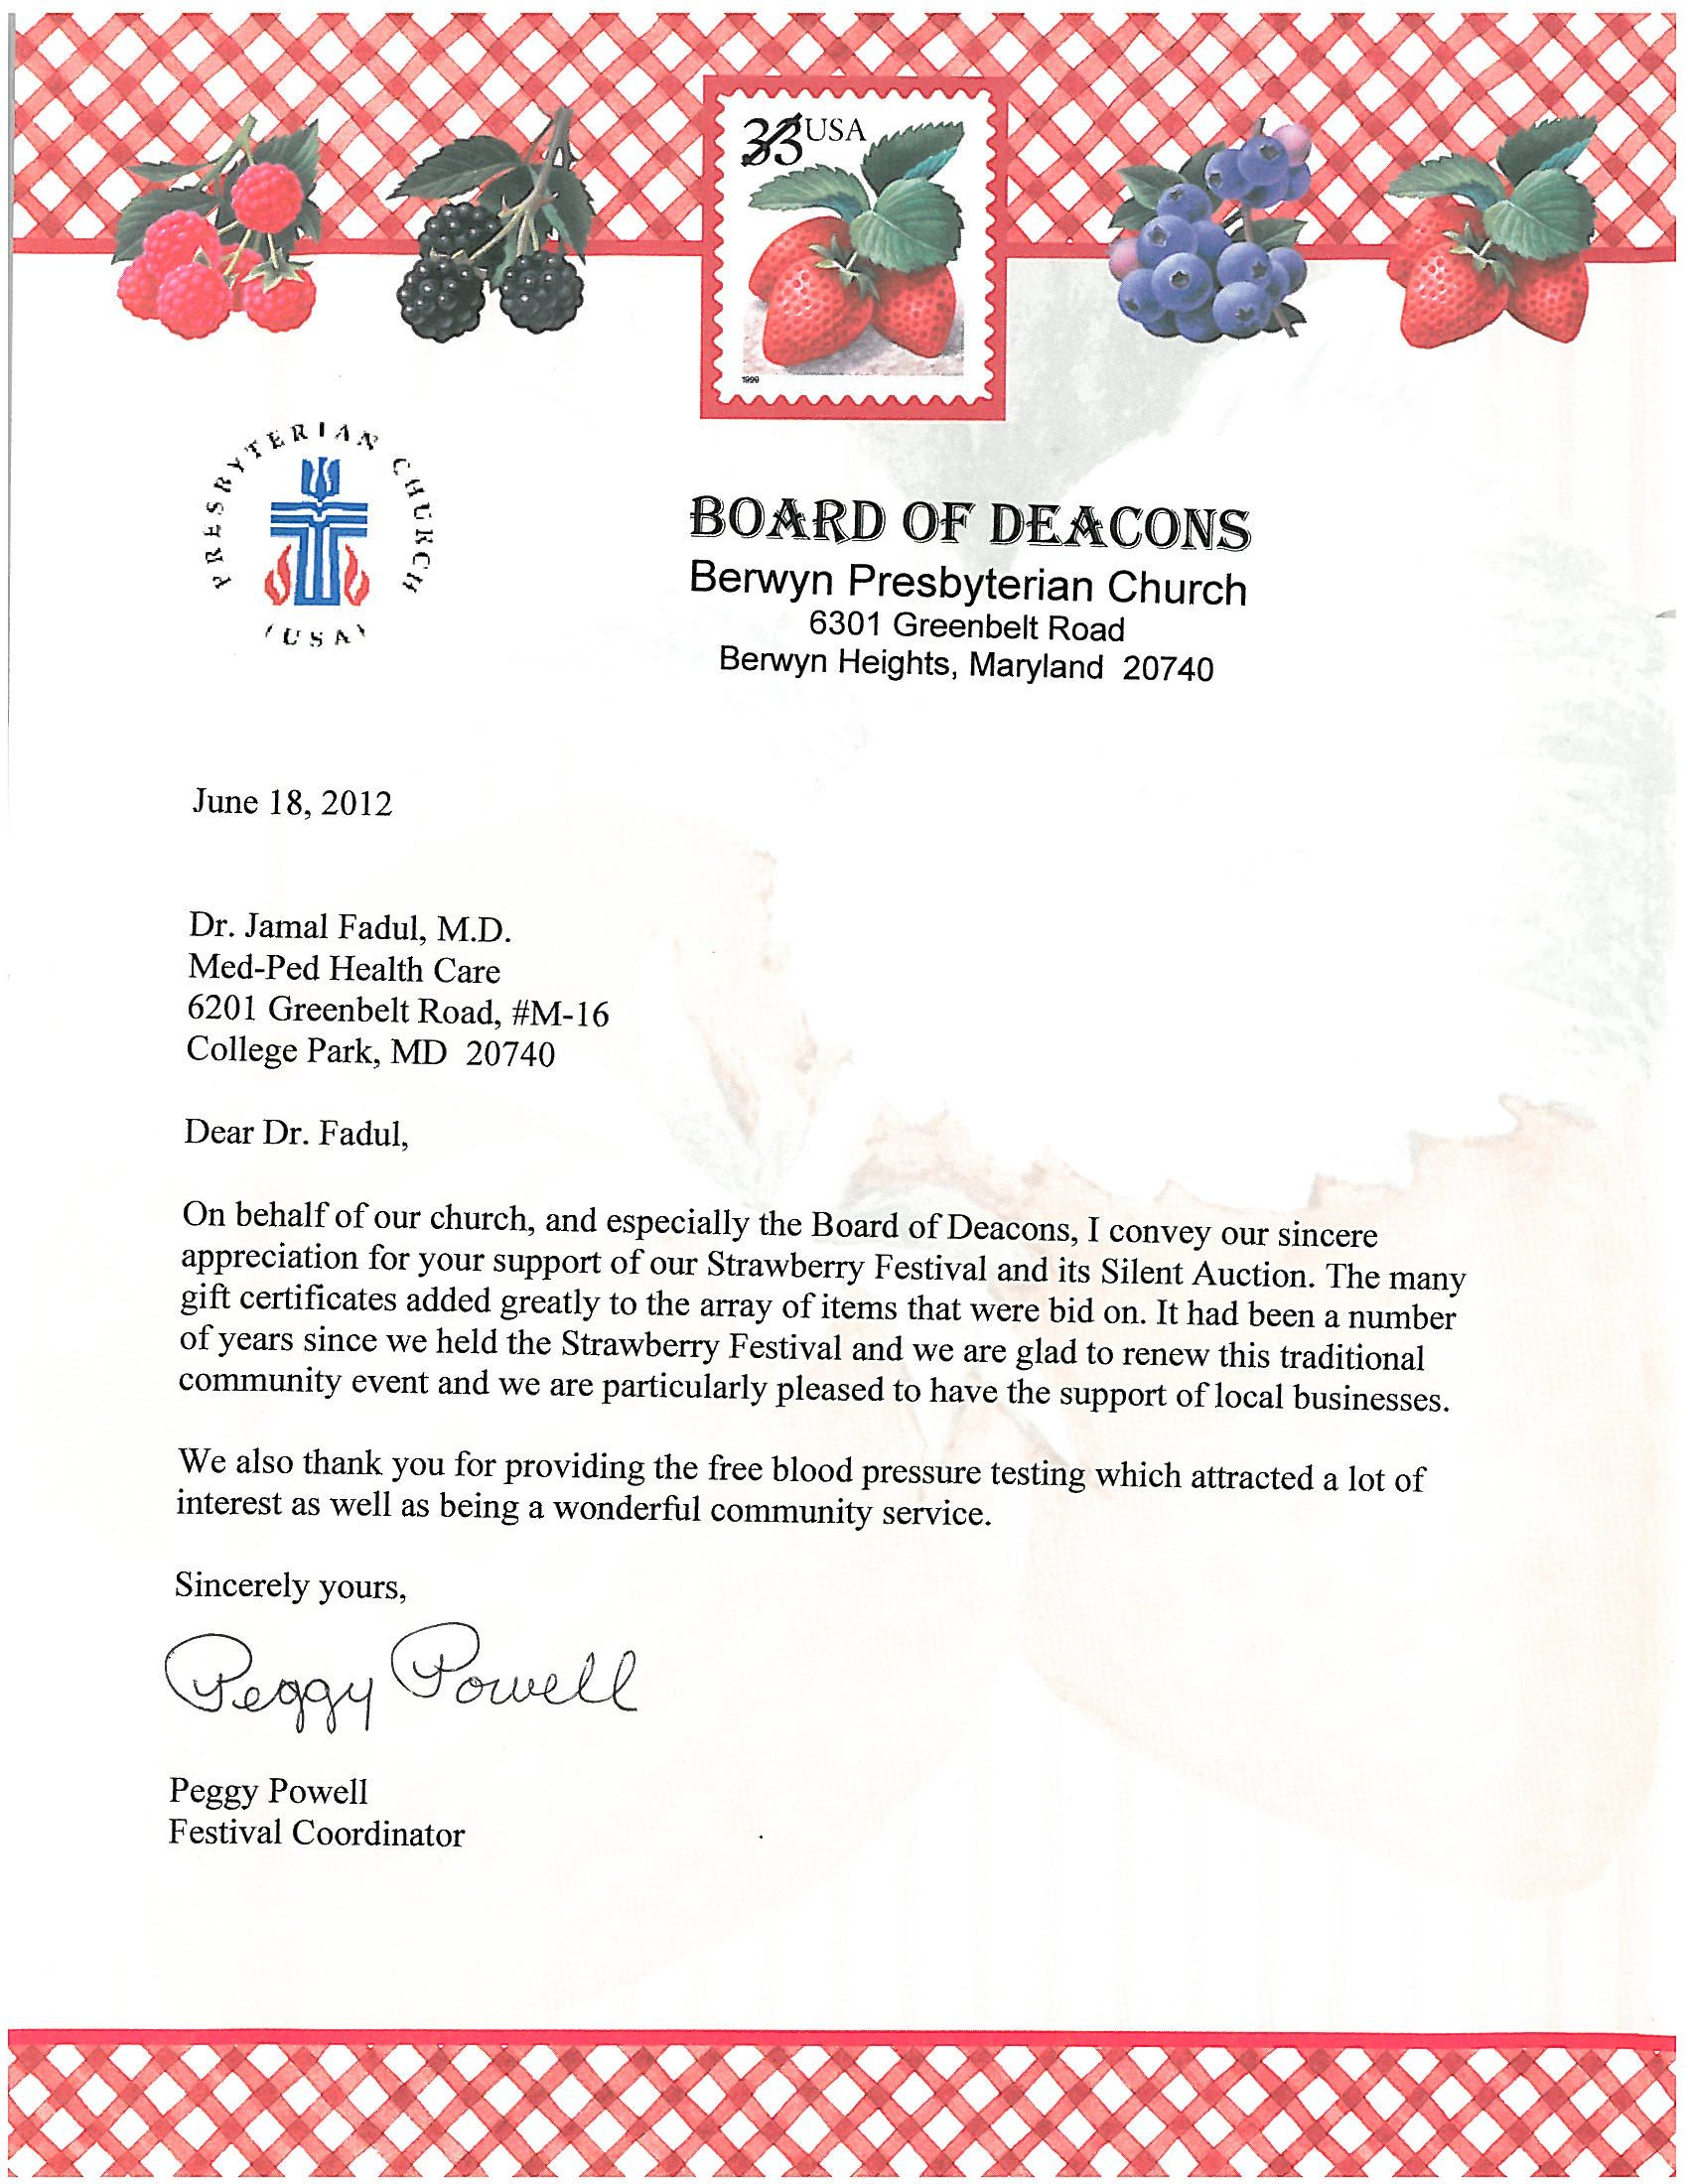 Berwyn prebyterian church appreciation letter for strawberry berwyn prebyterian church appreciation letter for strawberry festival volunteer work that our team did to our thecheapjerseys Images